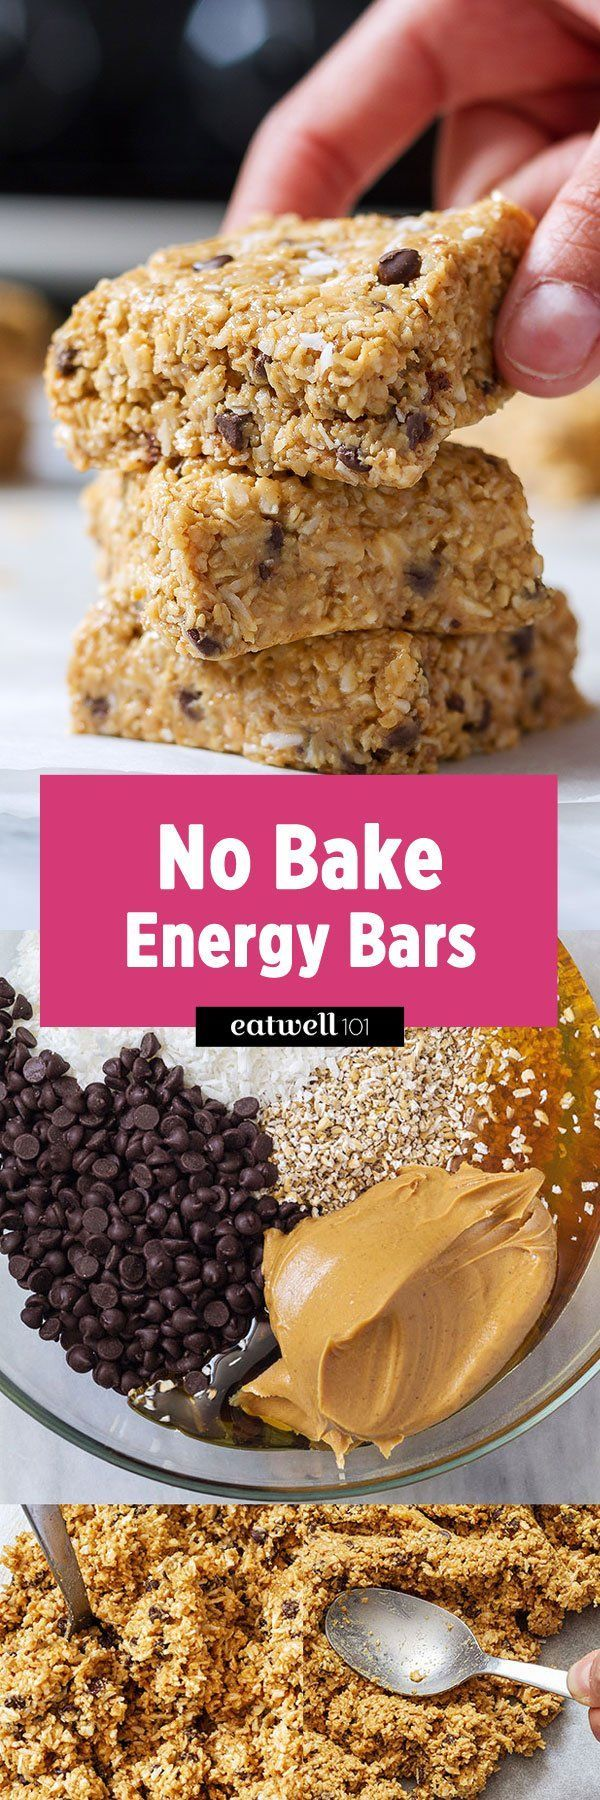 Make these no bake energy bars with oat peanut butter Chocolate at home we have the recipe for you!